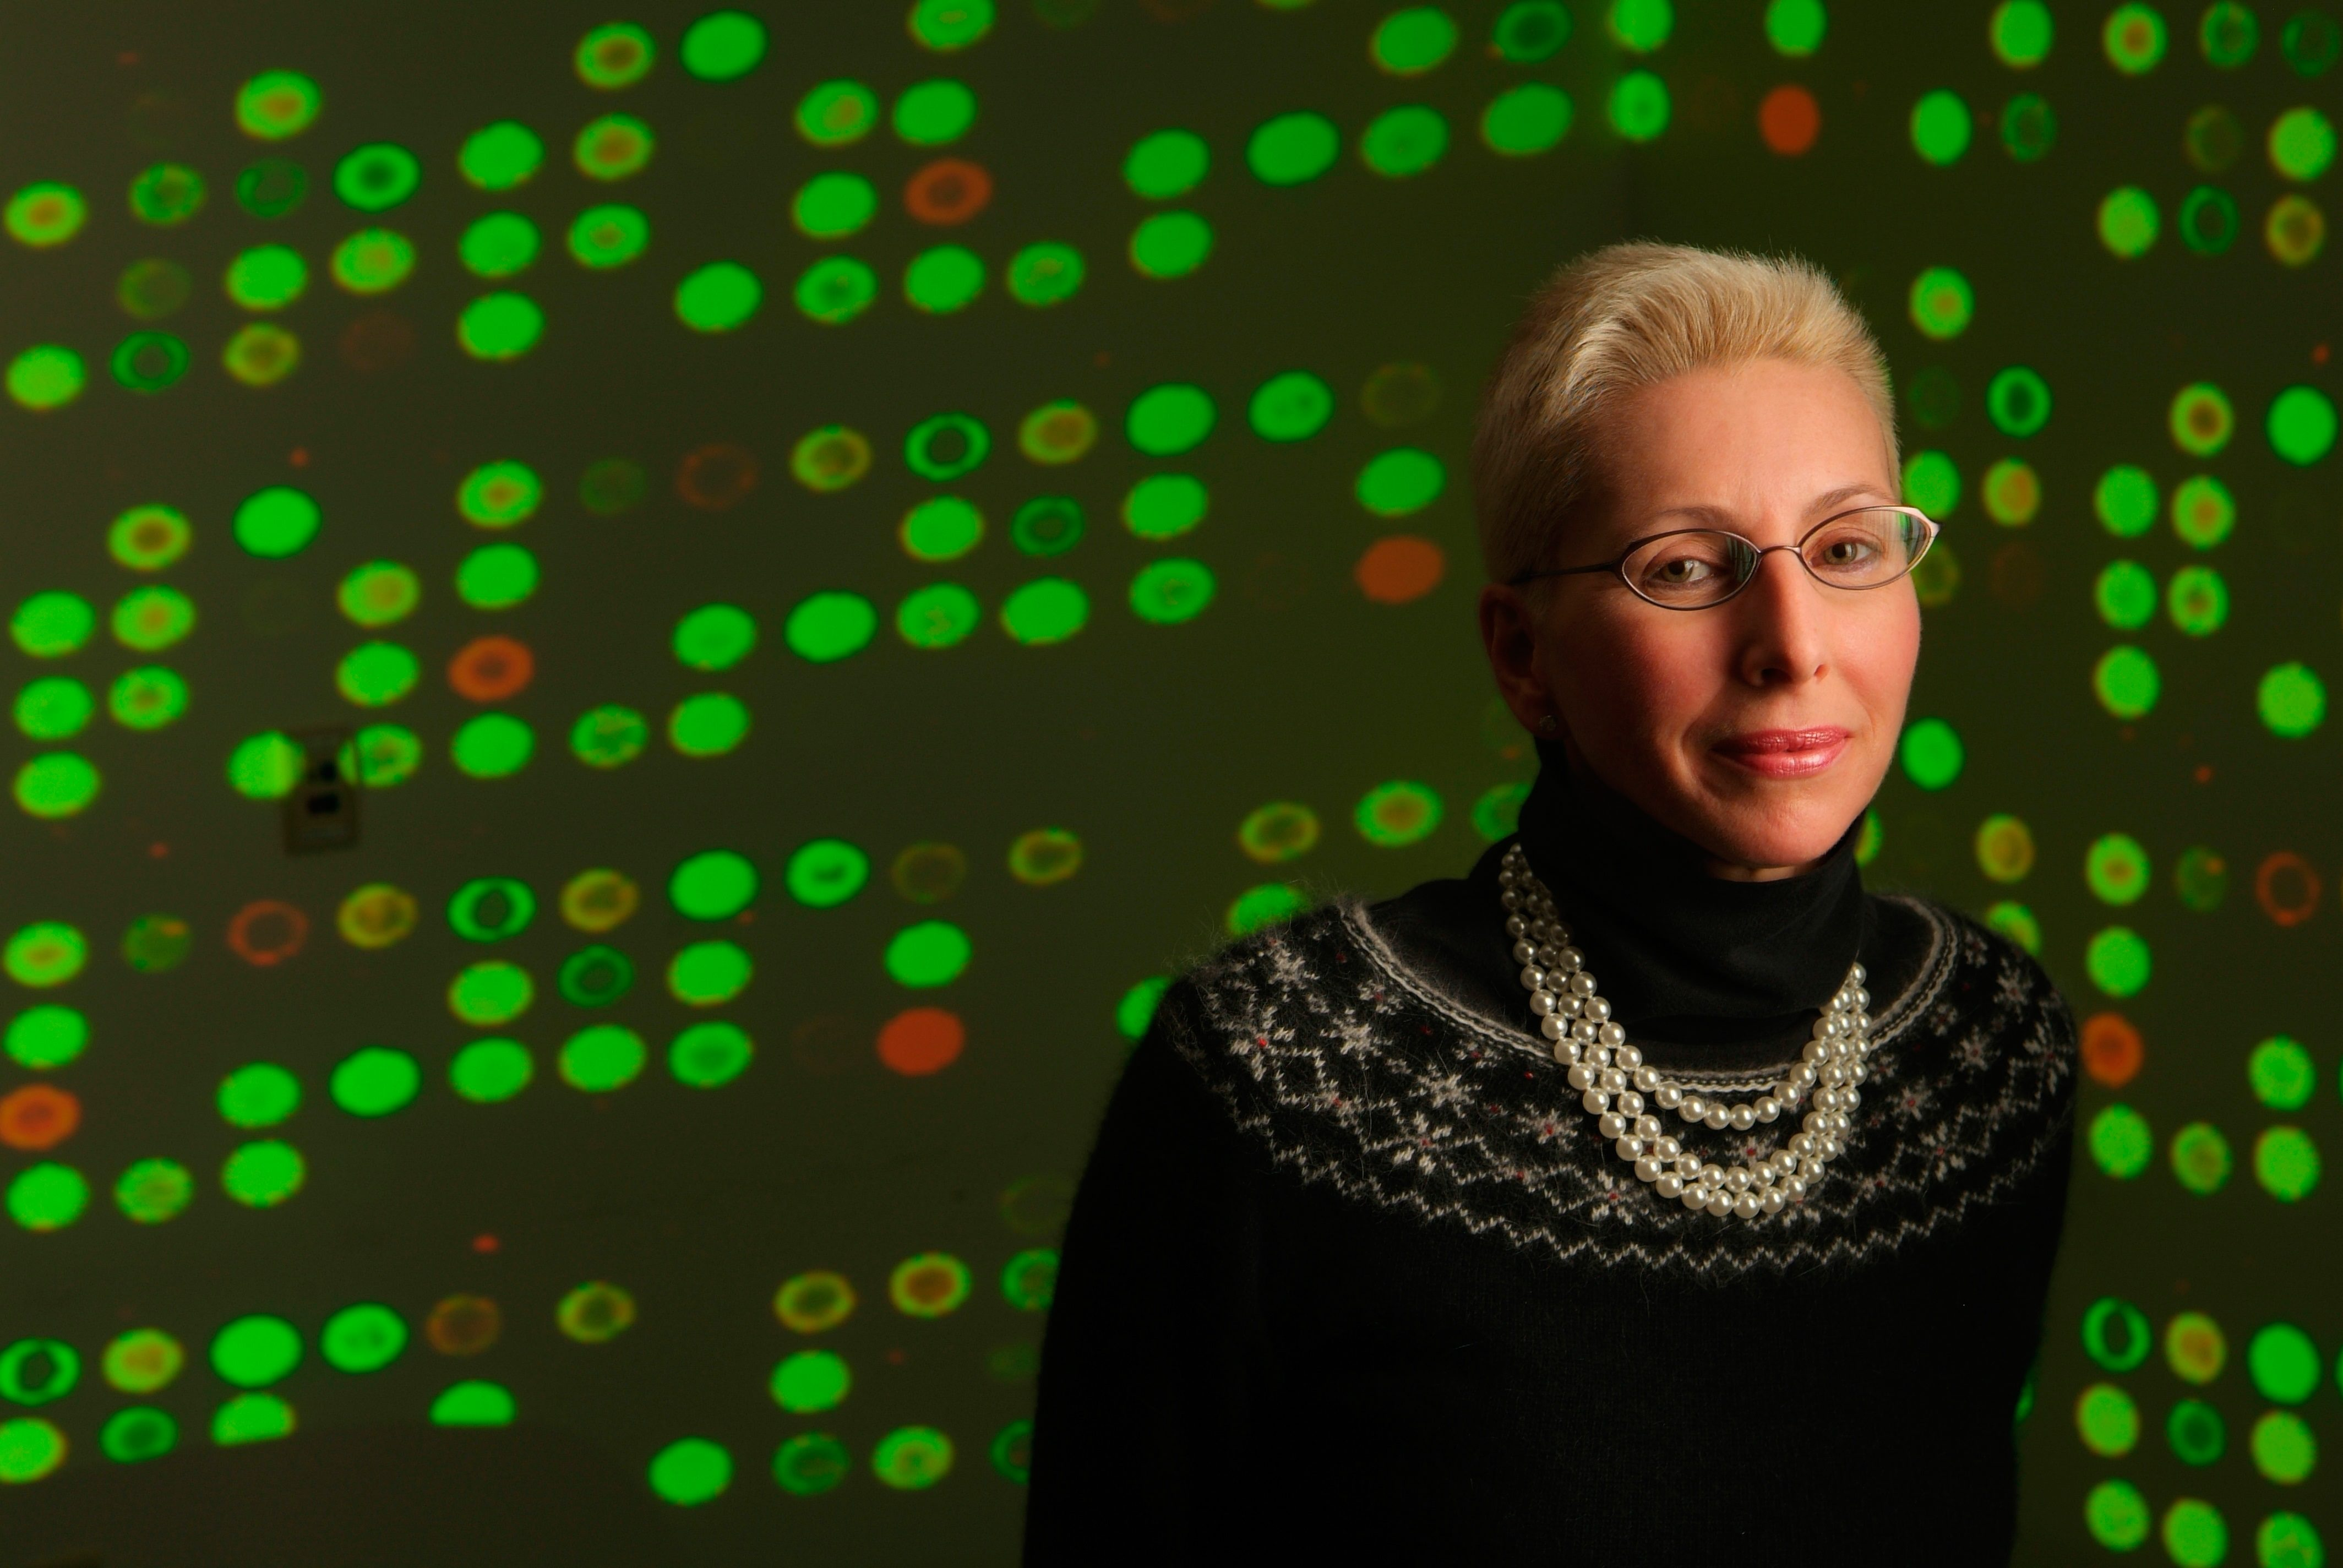 Norma Nowak, executive director of the University at Buffalo's New York State Center of Excellence in Bioinformatics and Life Sciences, was named the winner of the 2017 Athena Award.